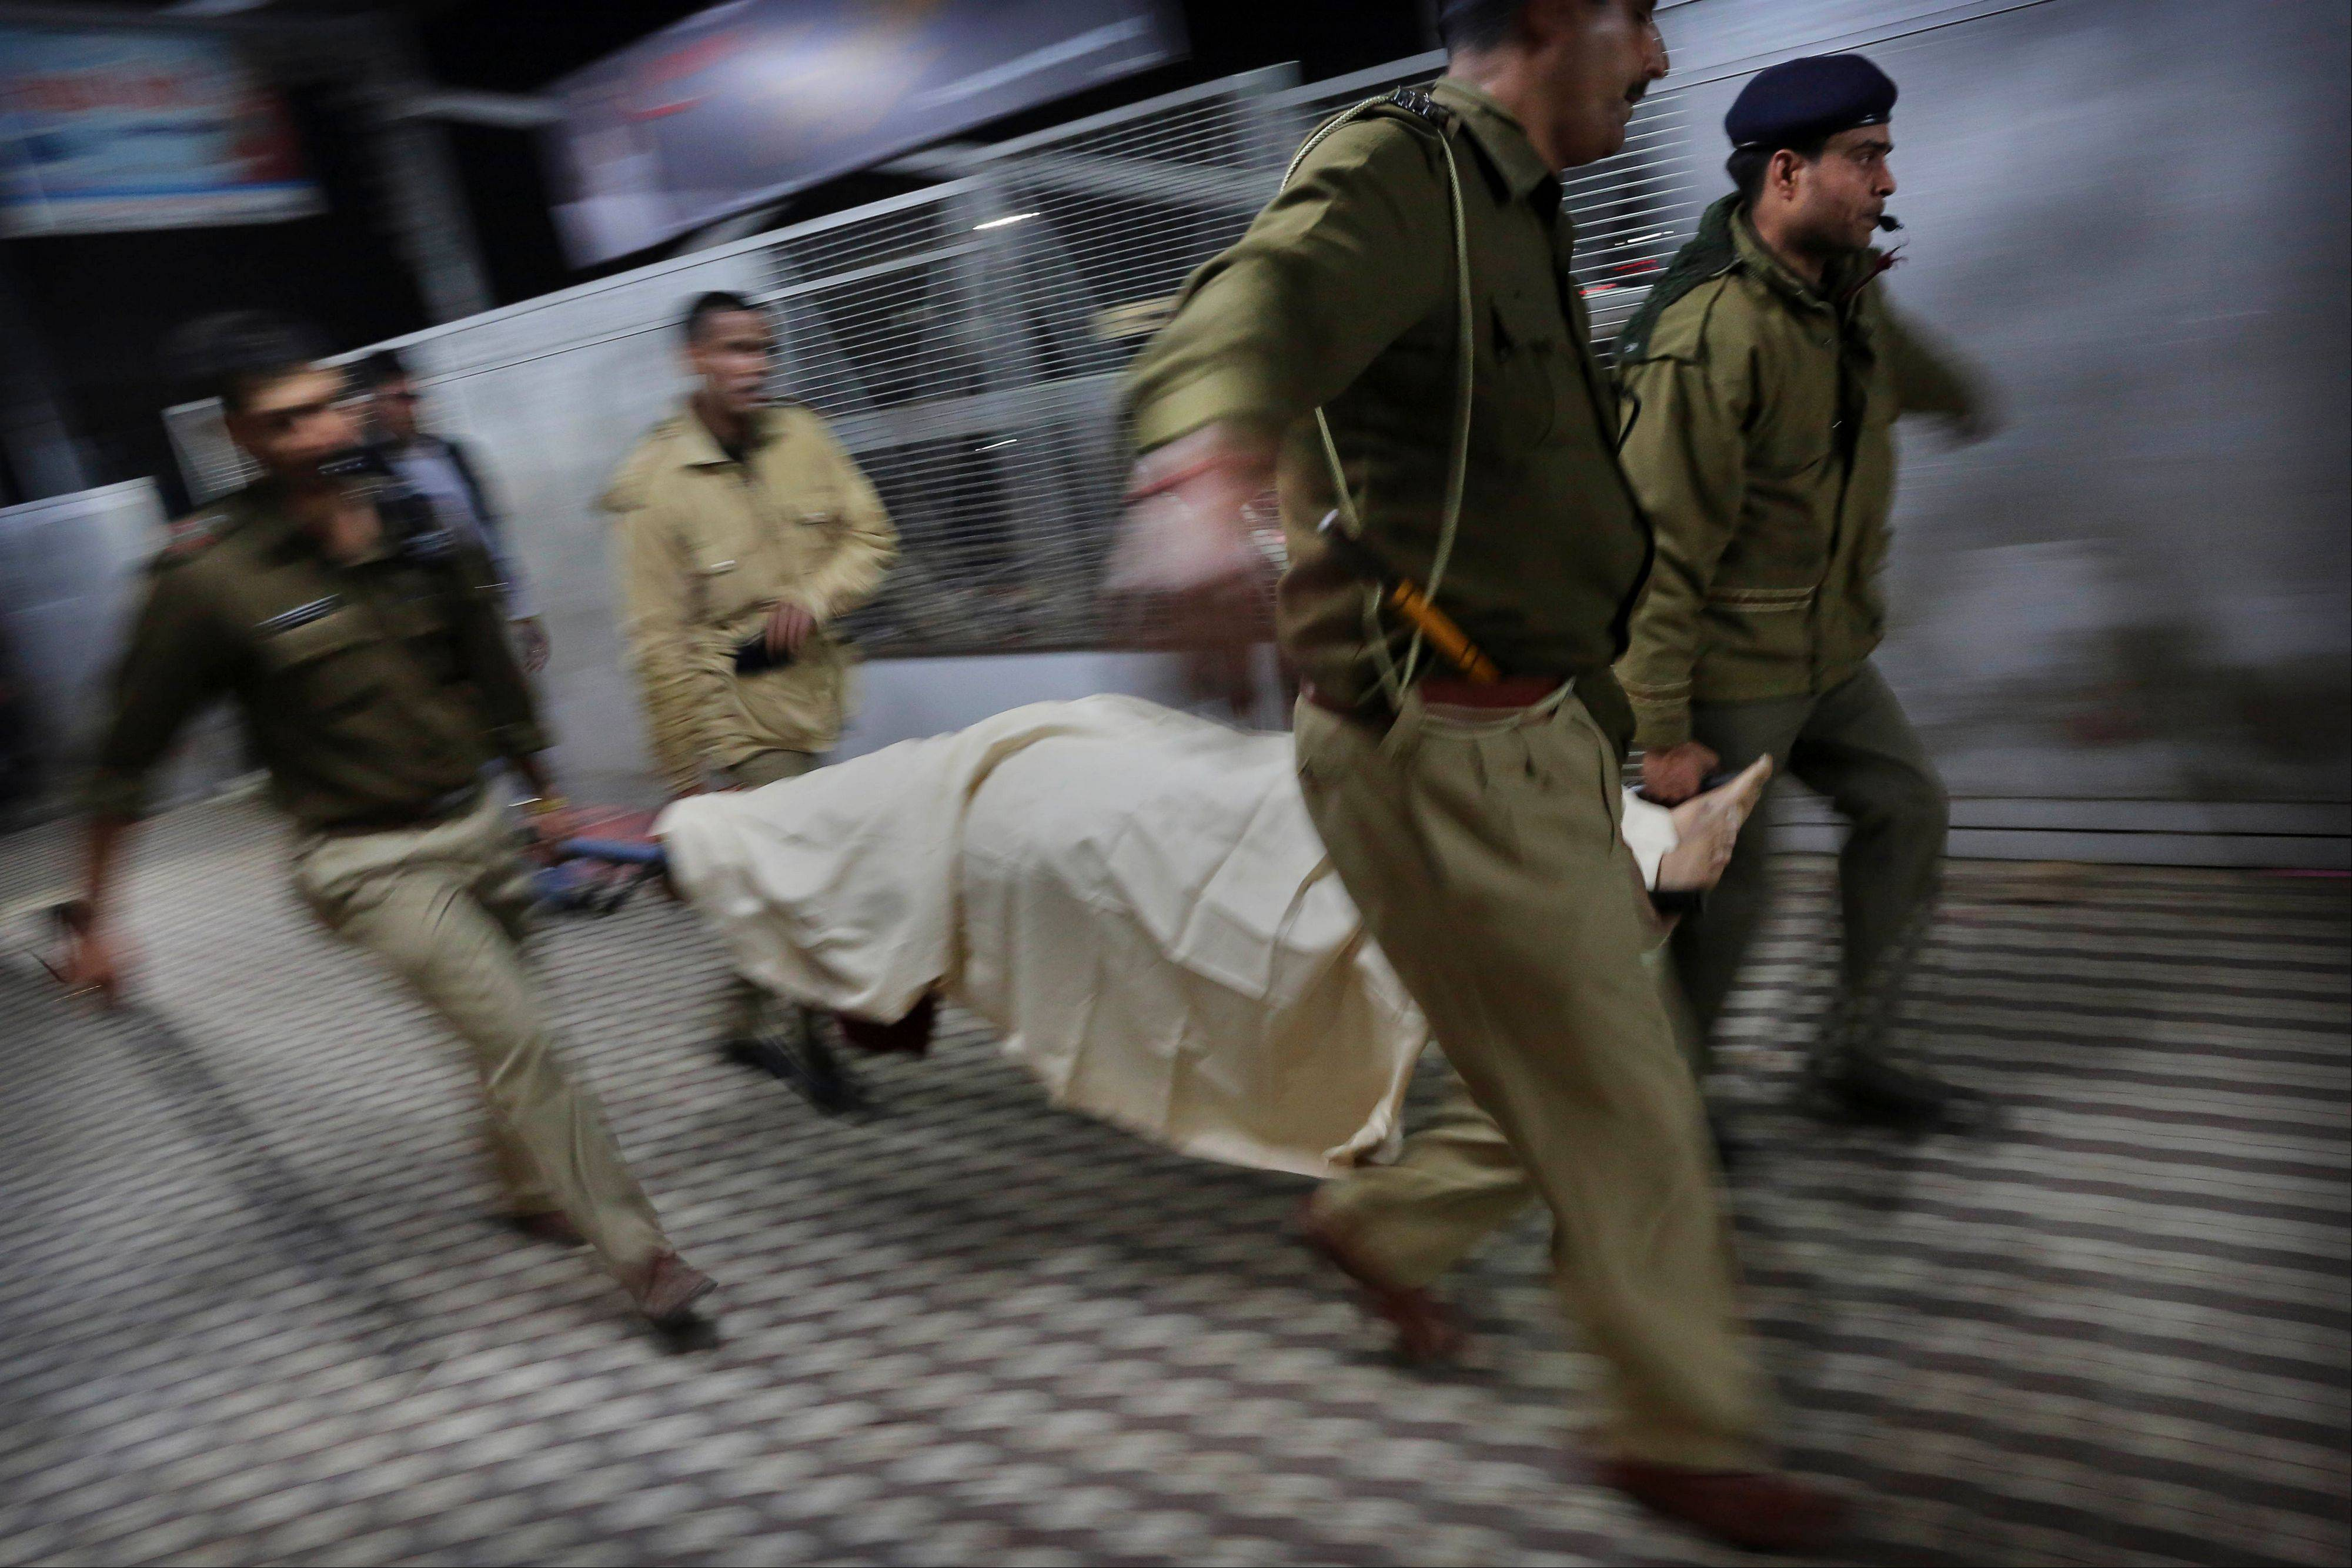 Indian police carry the body of a pilgrim who was killed in a stampede Sunday on a railway platform in Allahabad, India.